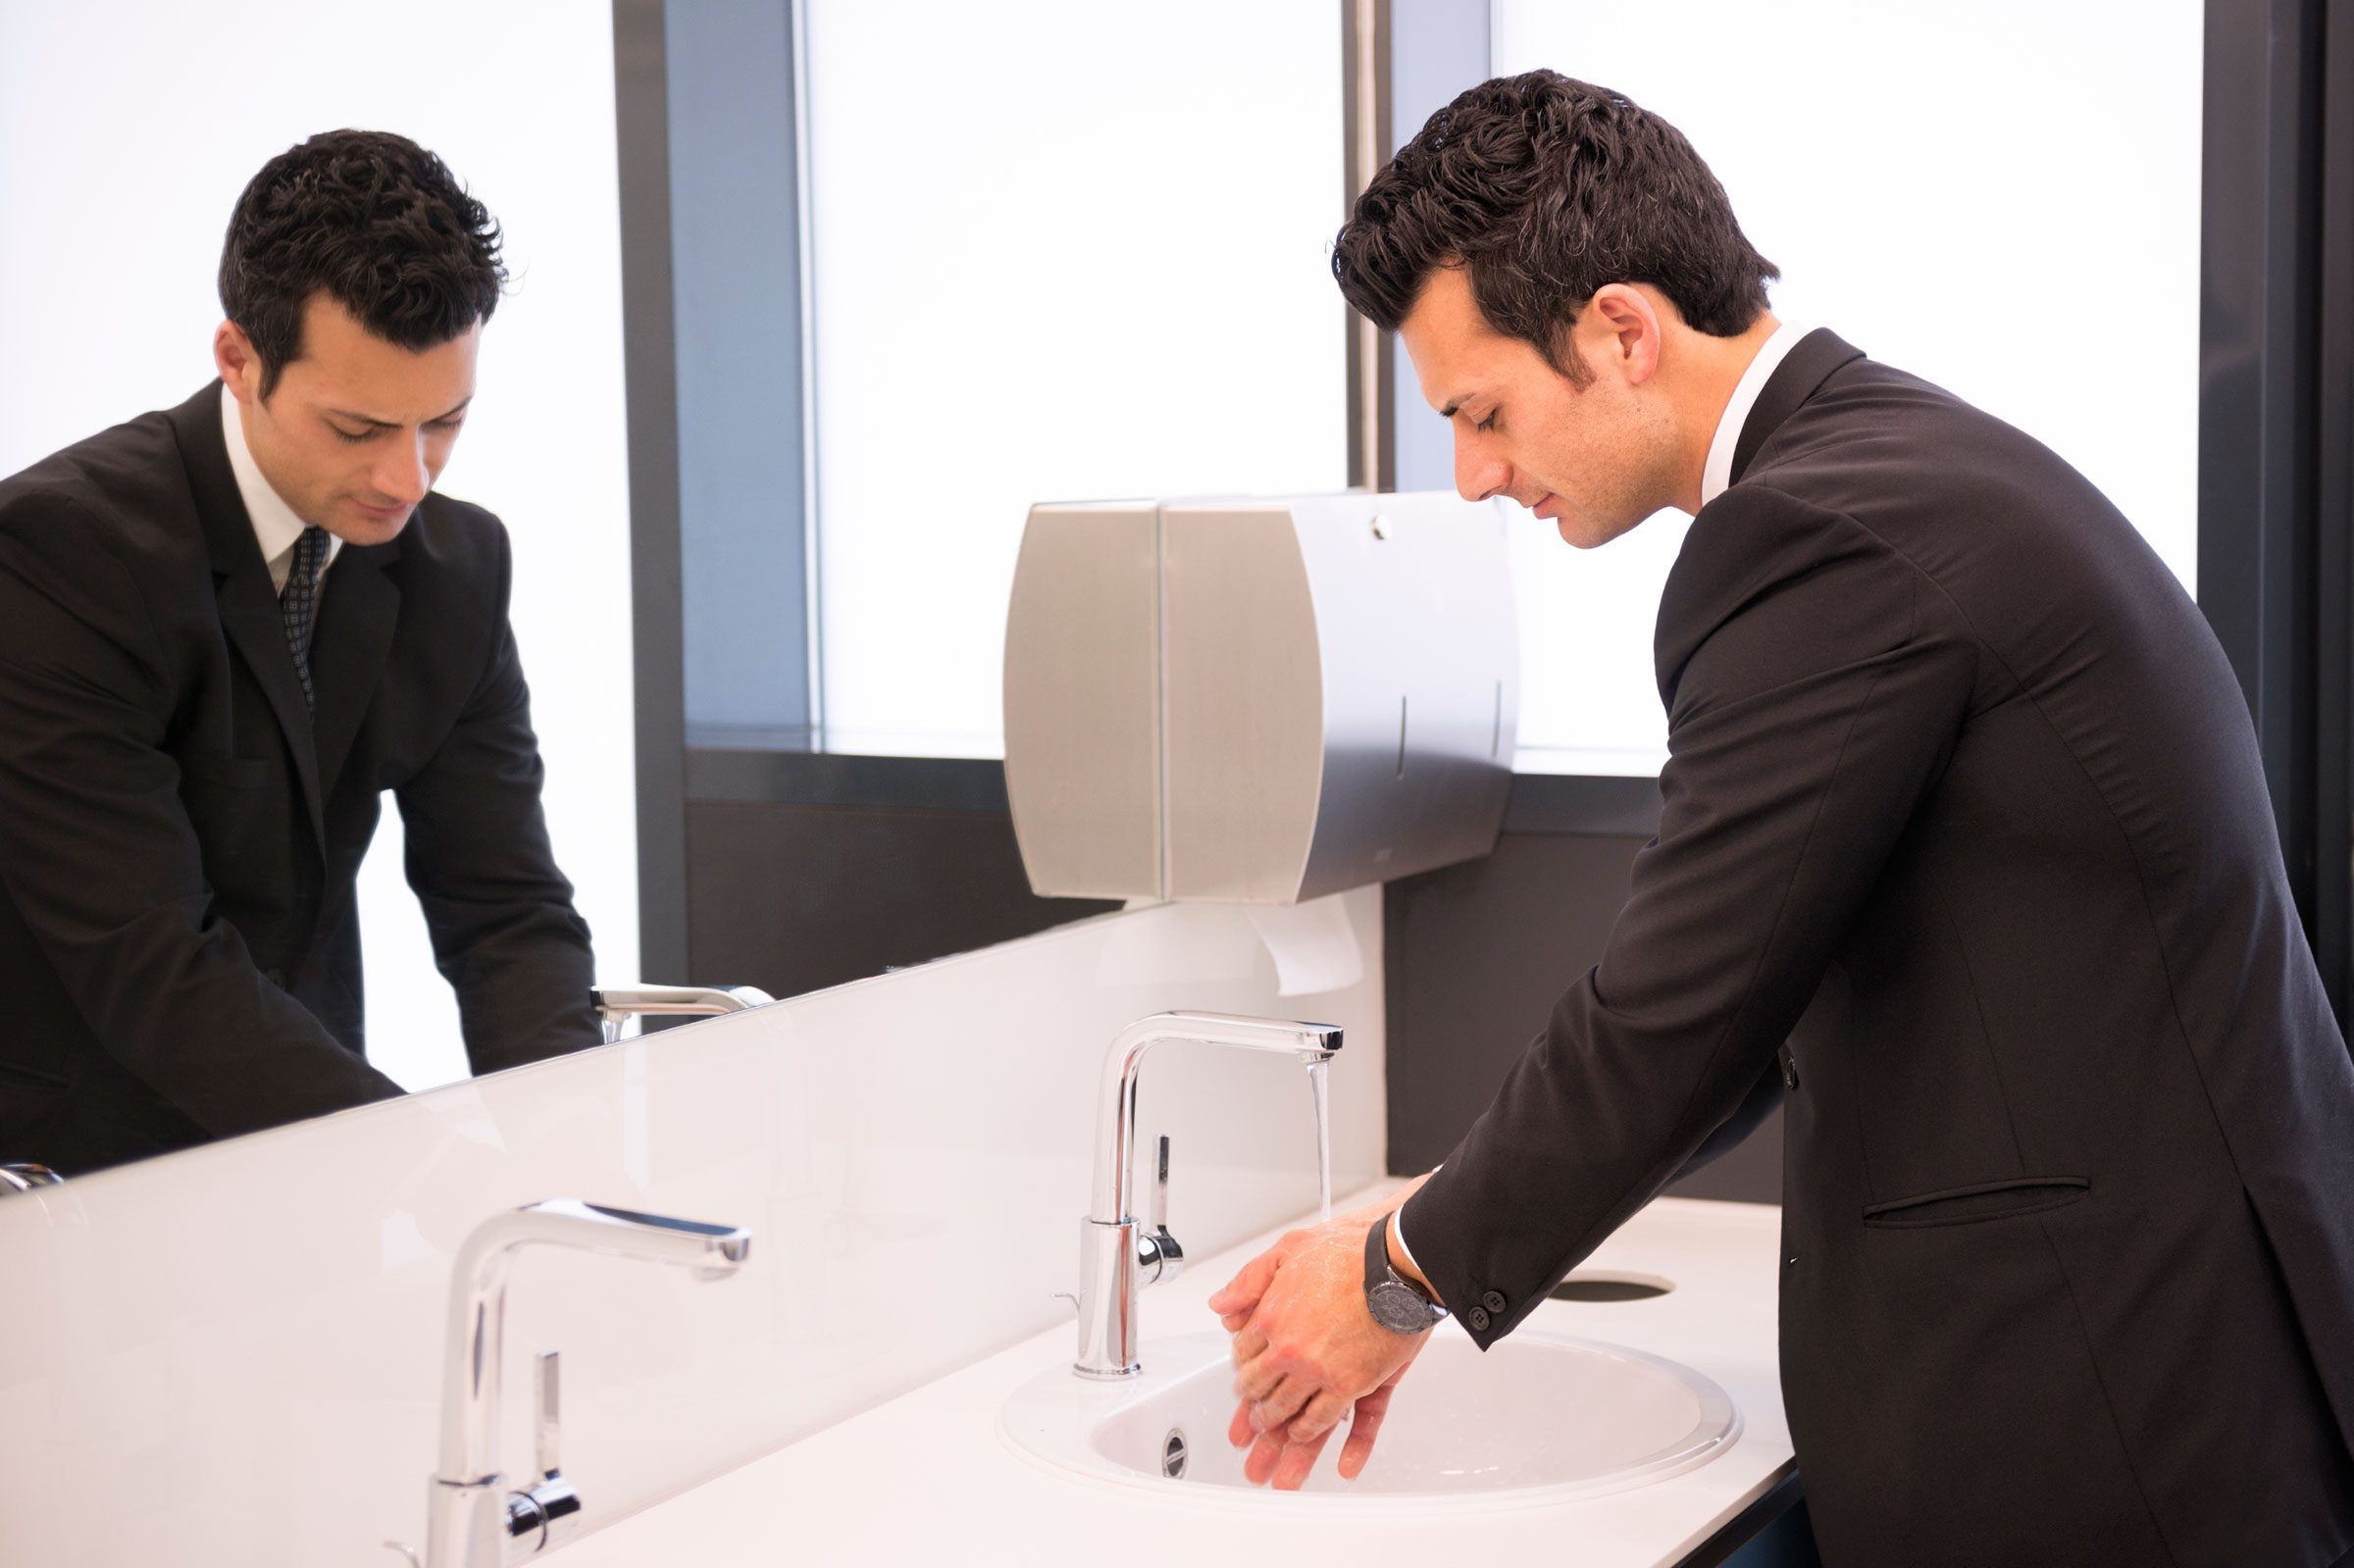 My boss and I walk into the restroom together—am I supposed to carry on a conversation?